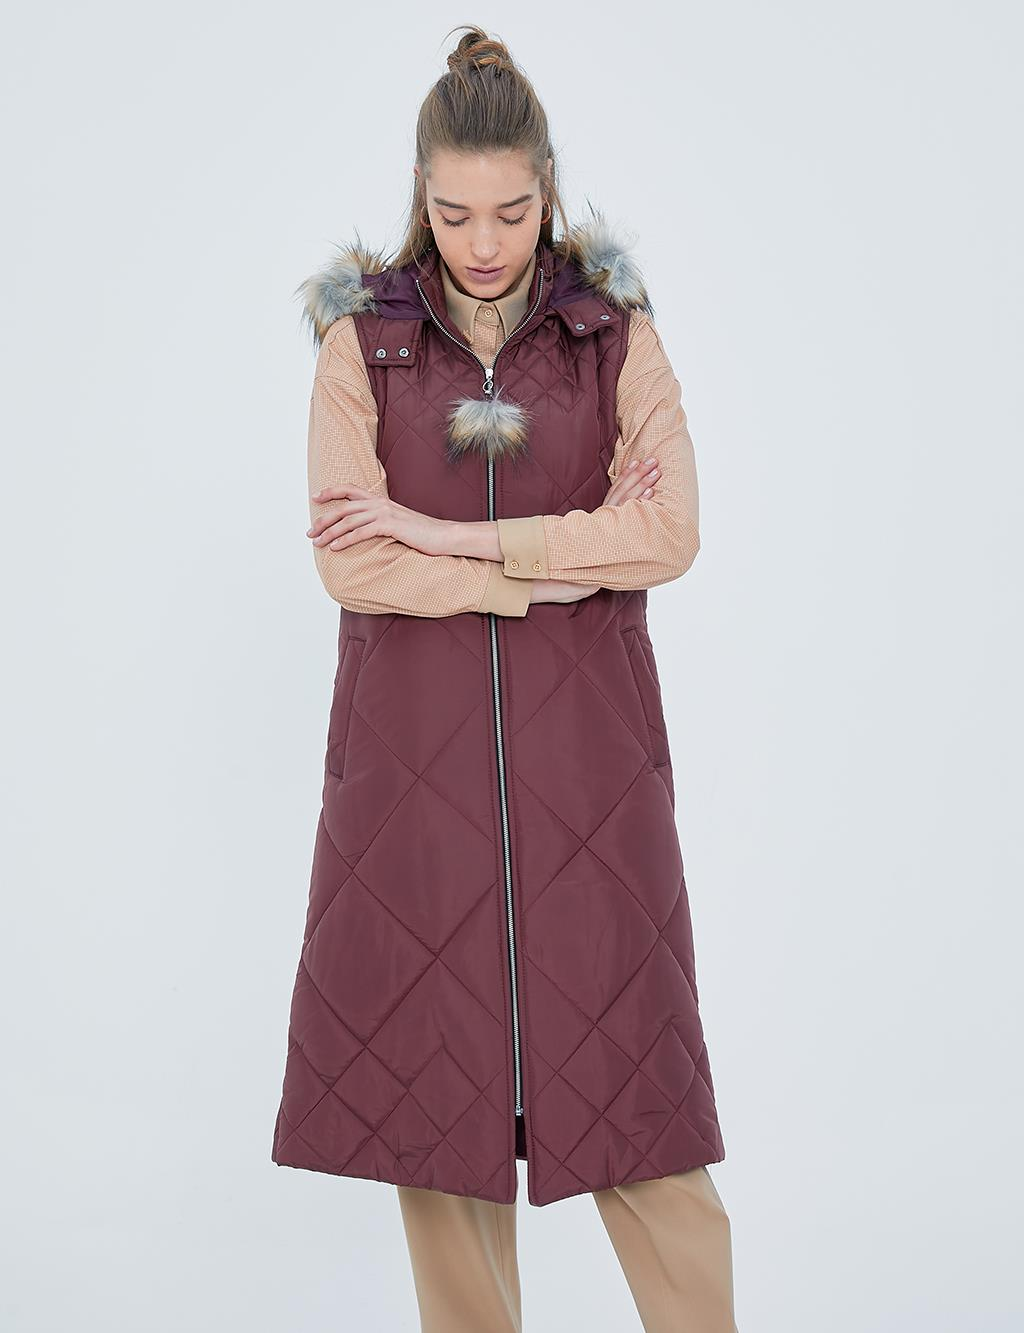 Furry and Quilted Vest A20 10022 Burgundy